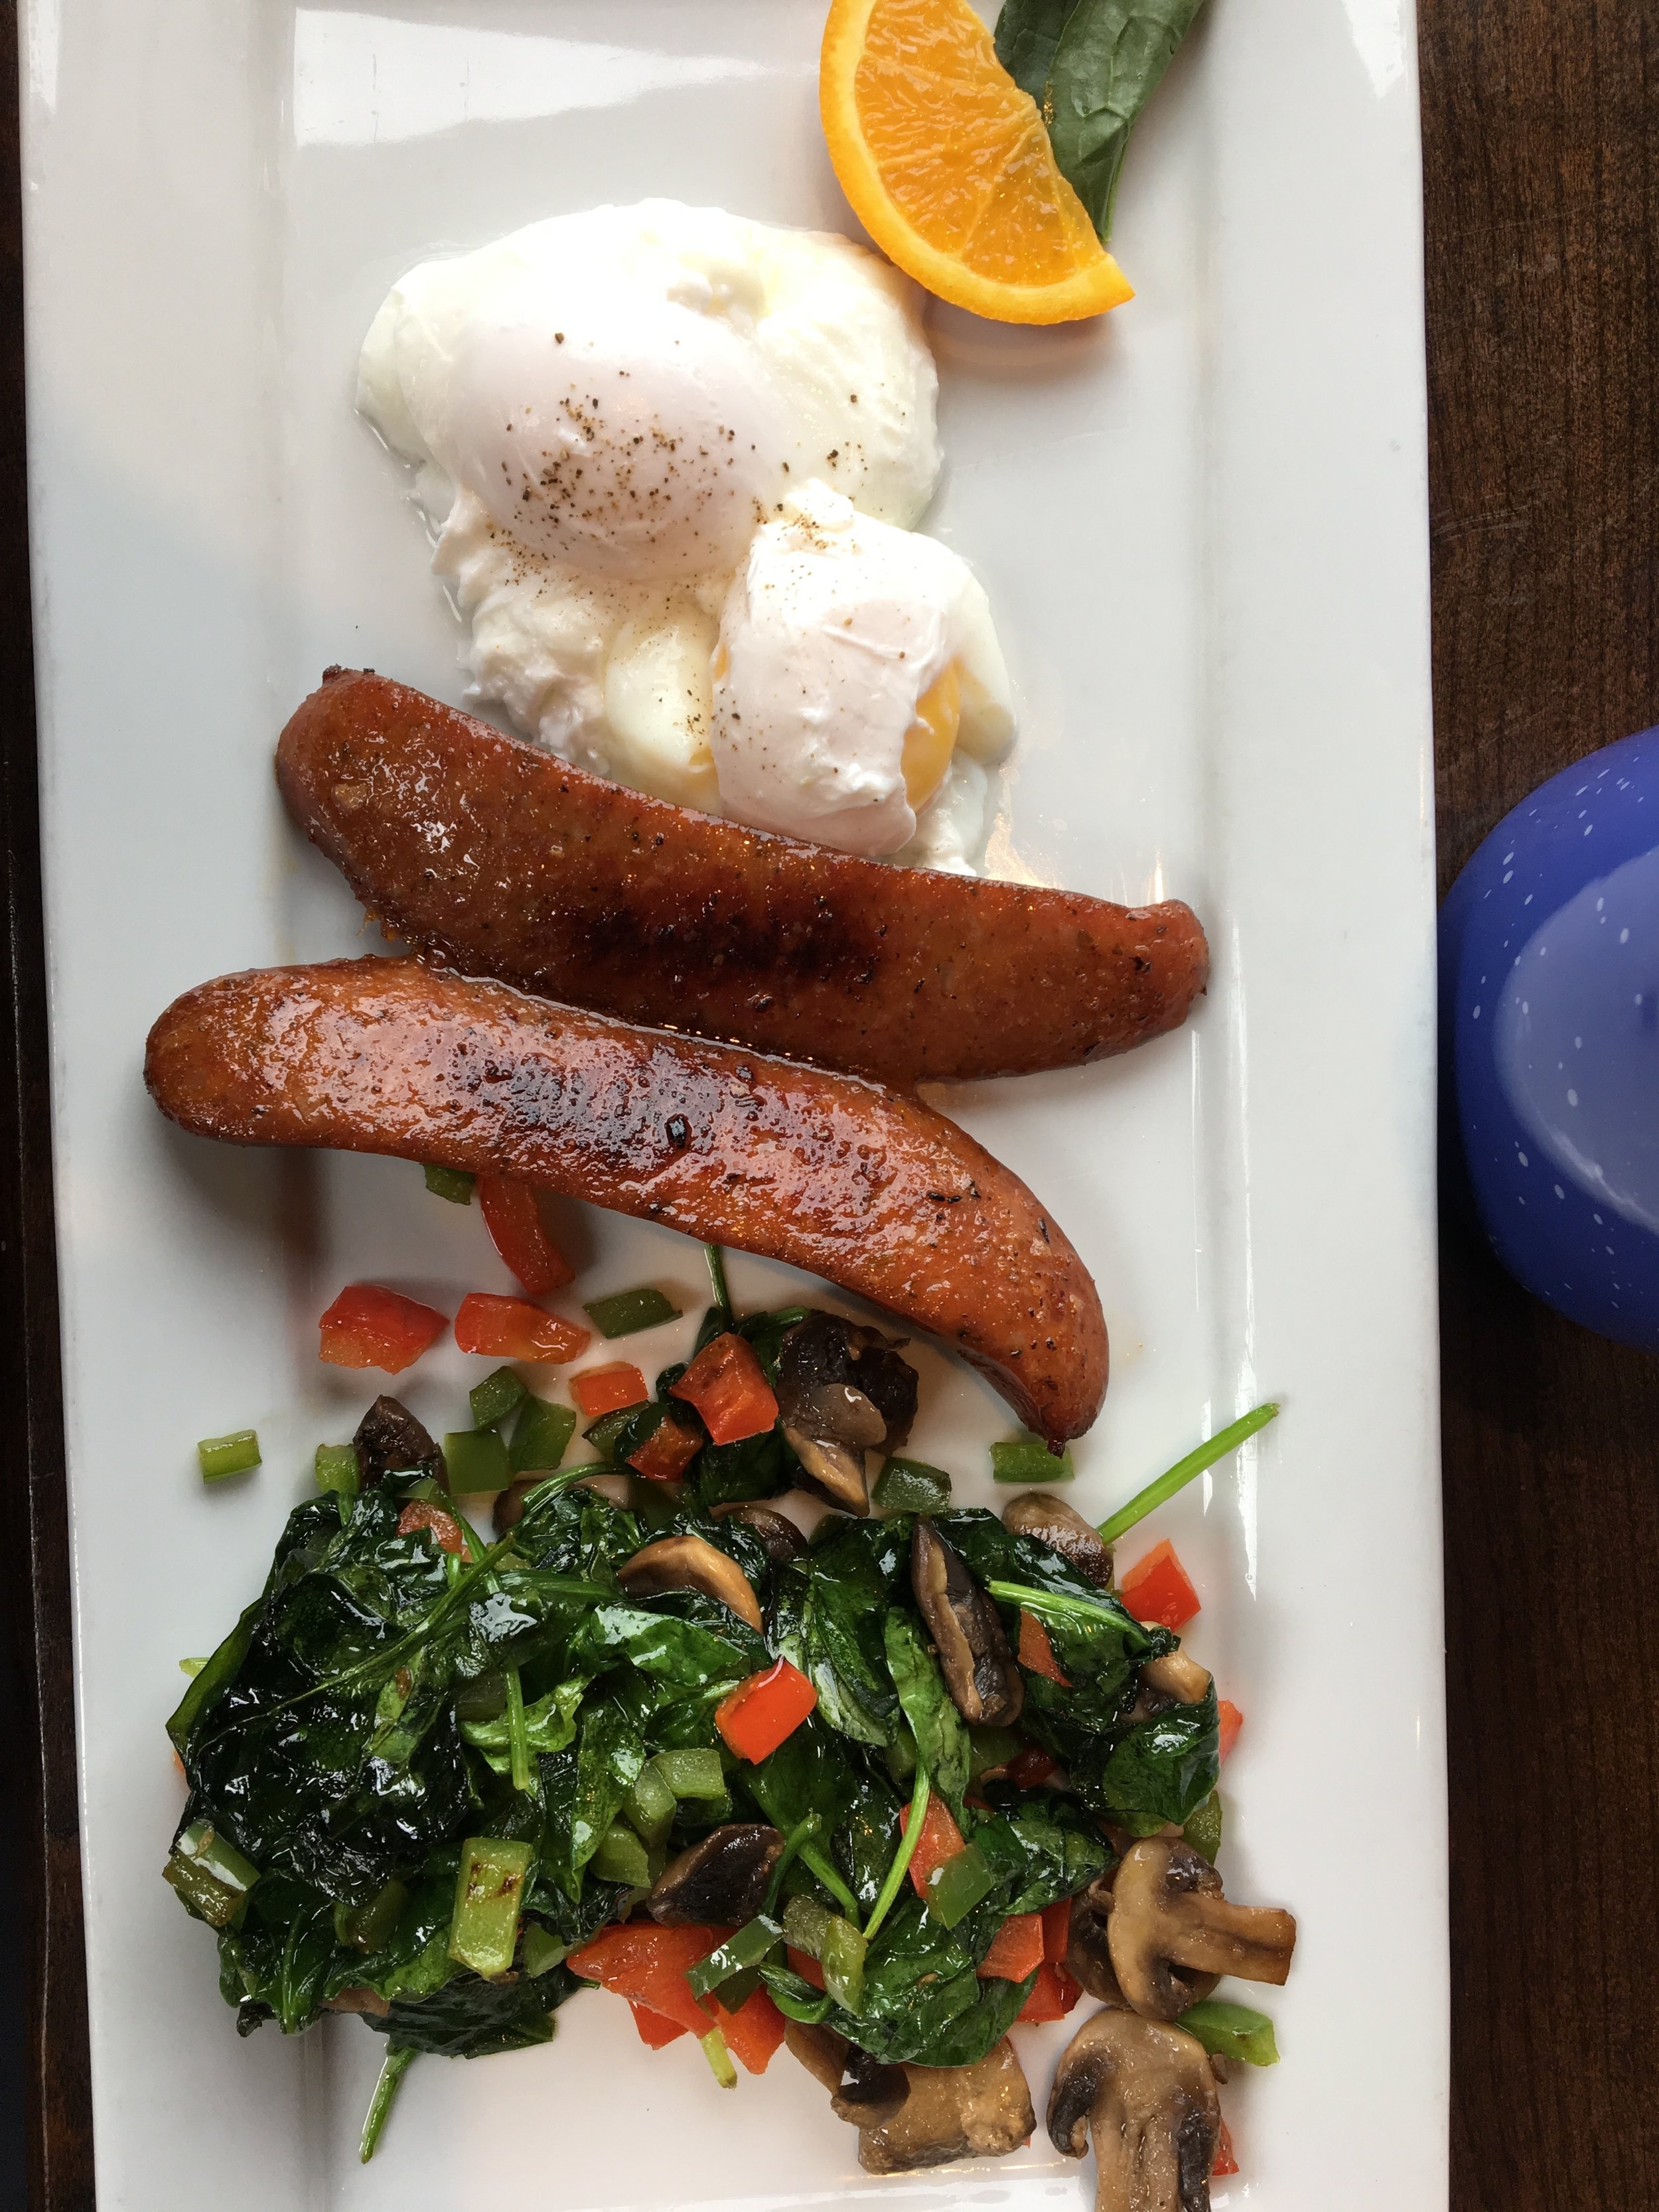 Sauteed spinach with mushrooms and bell pepper, chicken sausage, and poached eggs.